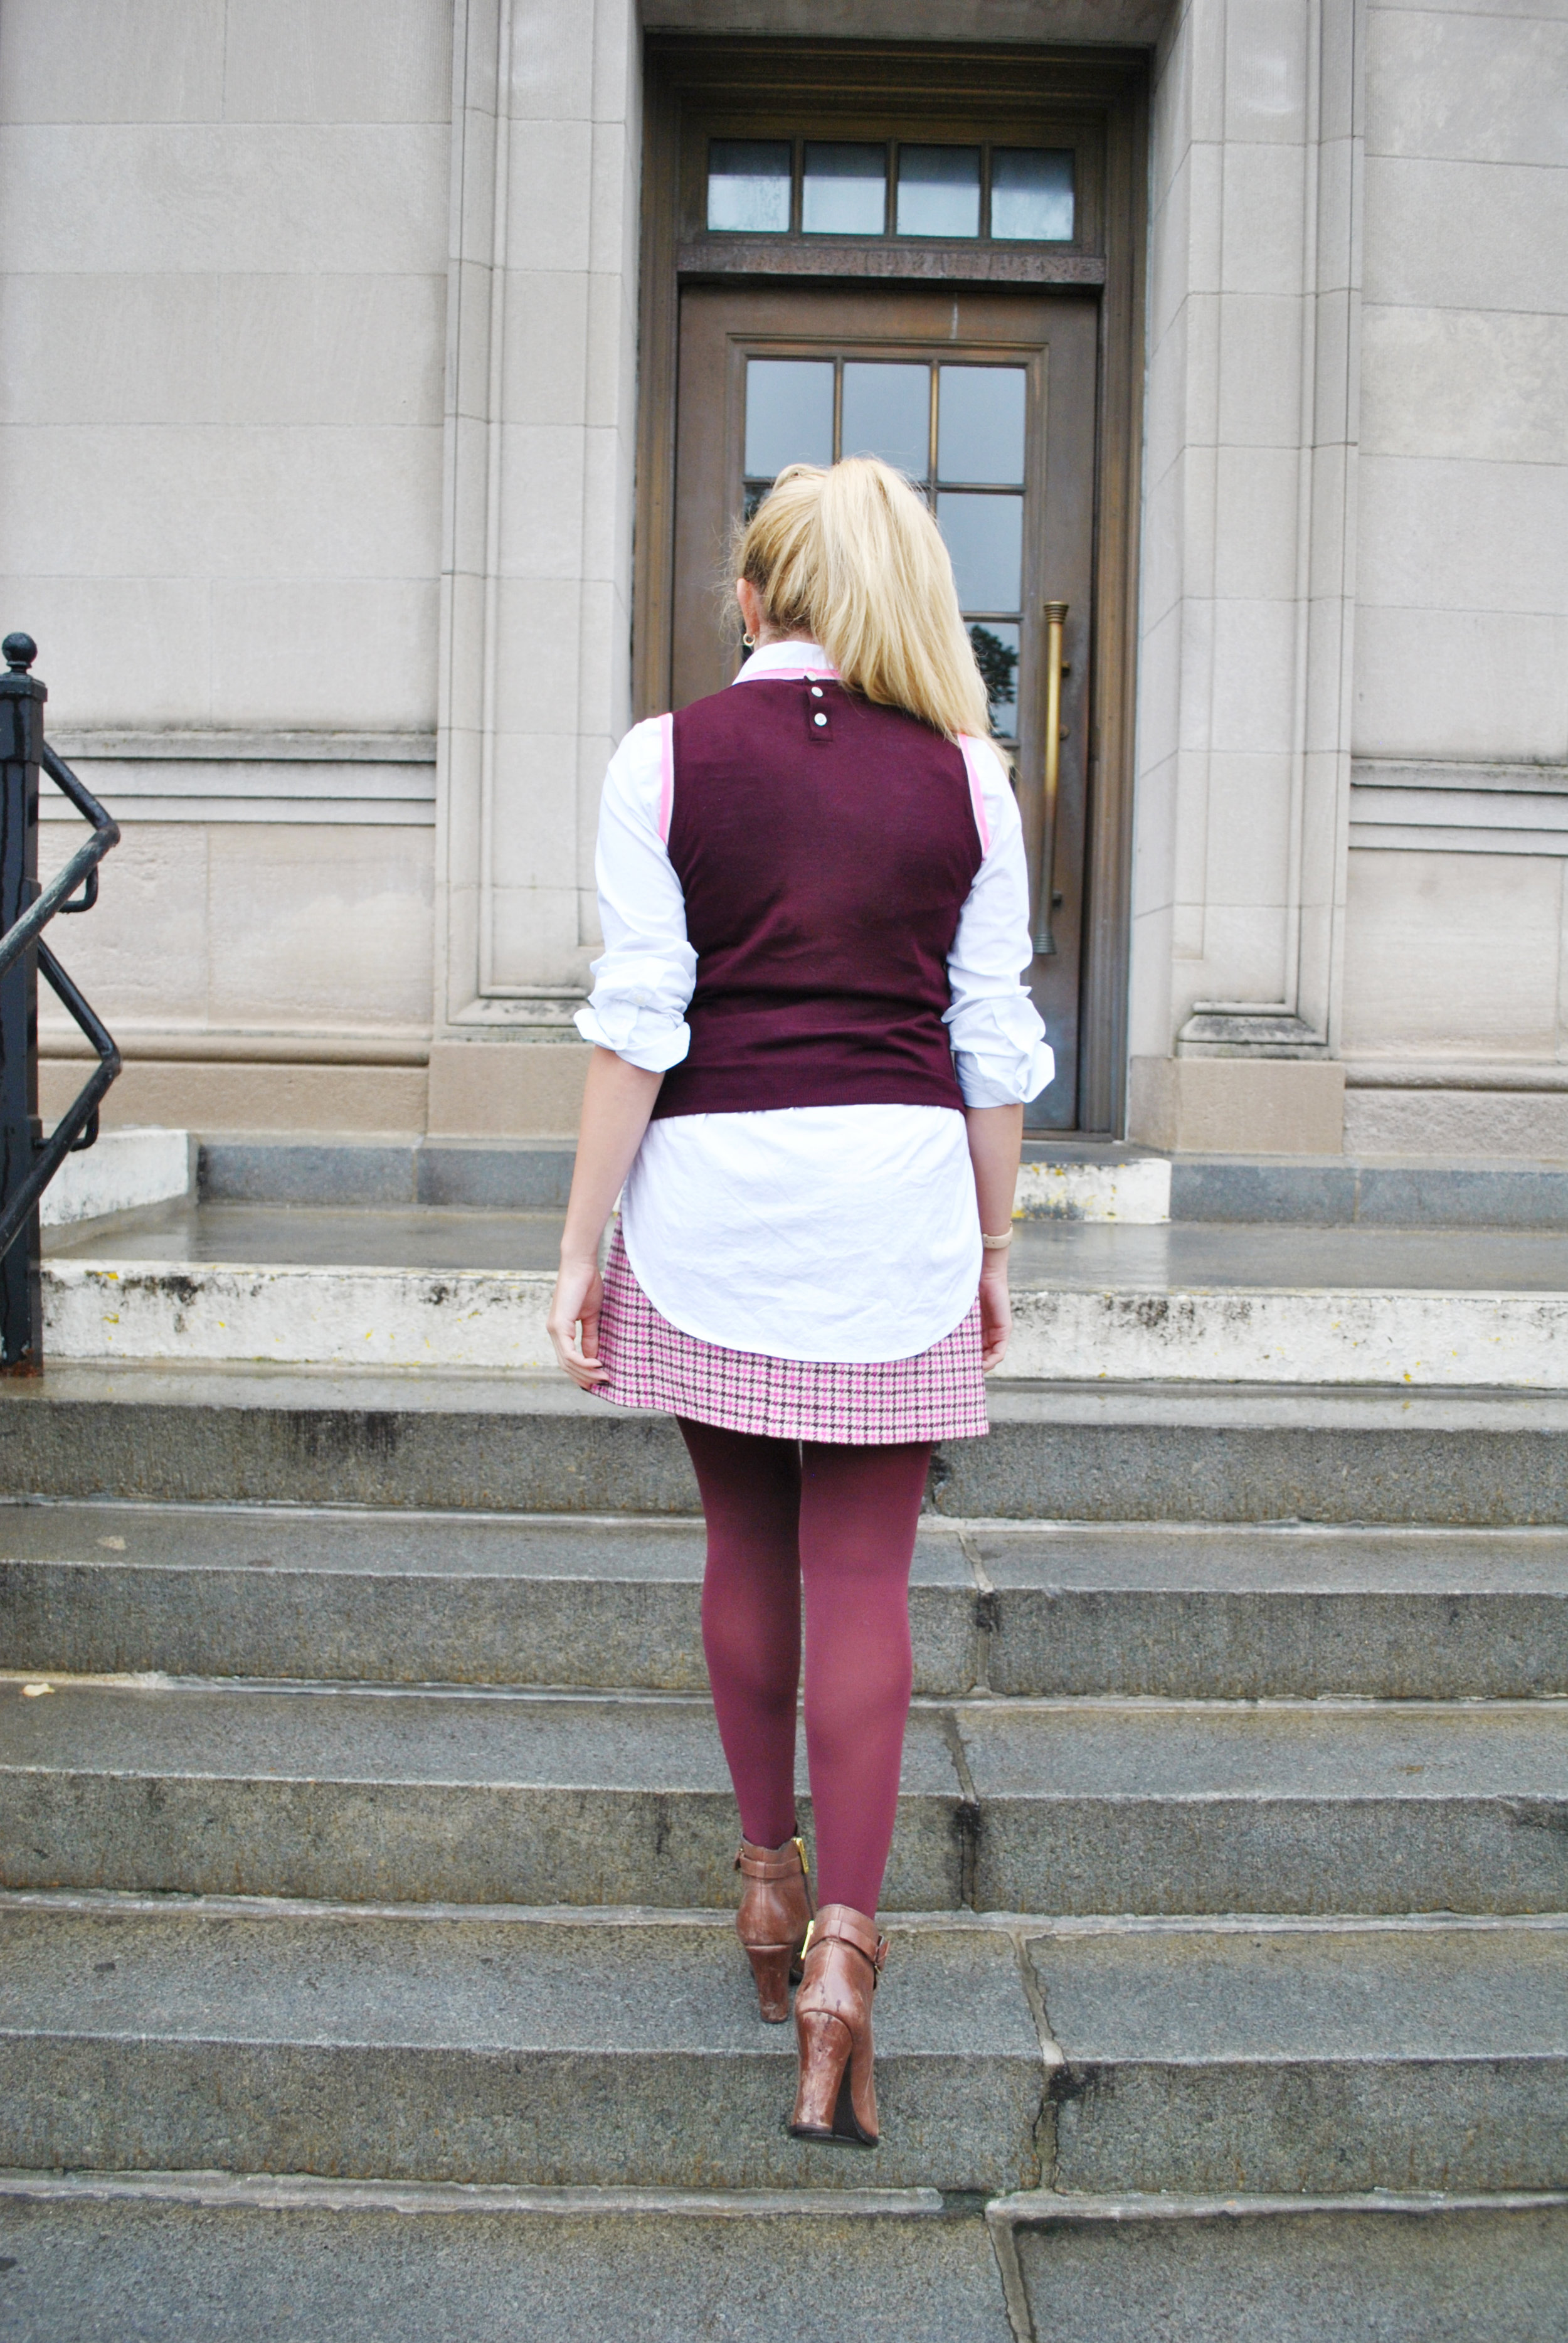 thoughtfulwish | preppy // layers // j.crew // boston // new england fashion // fall outfit // cher // clueless // maroon // plaid // meredith wish